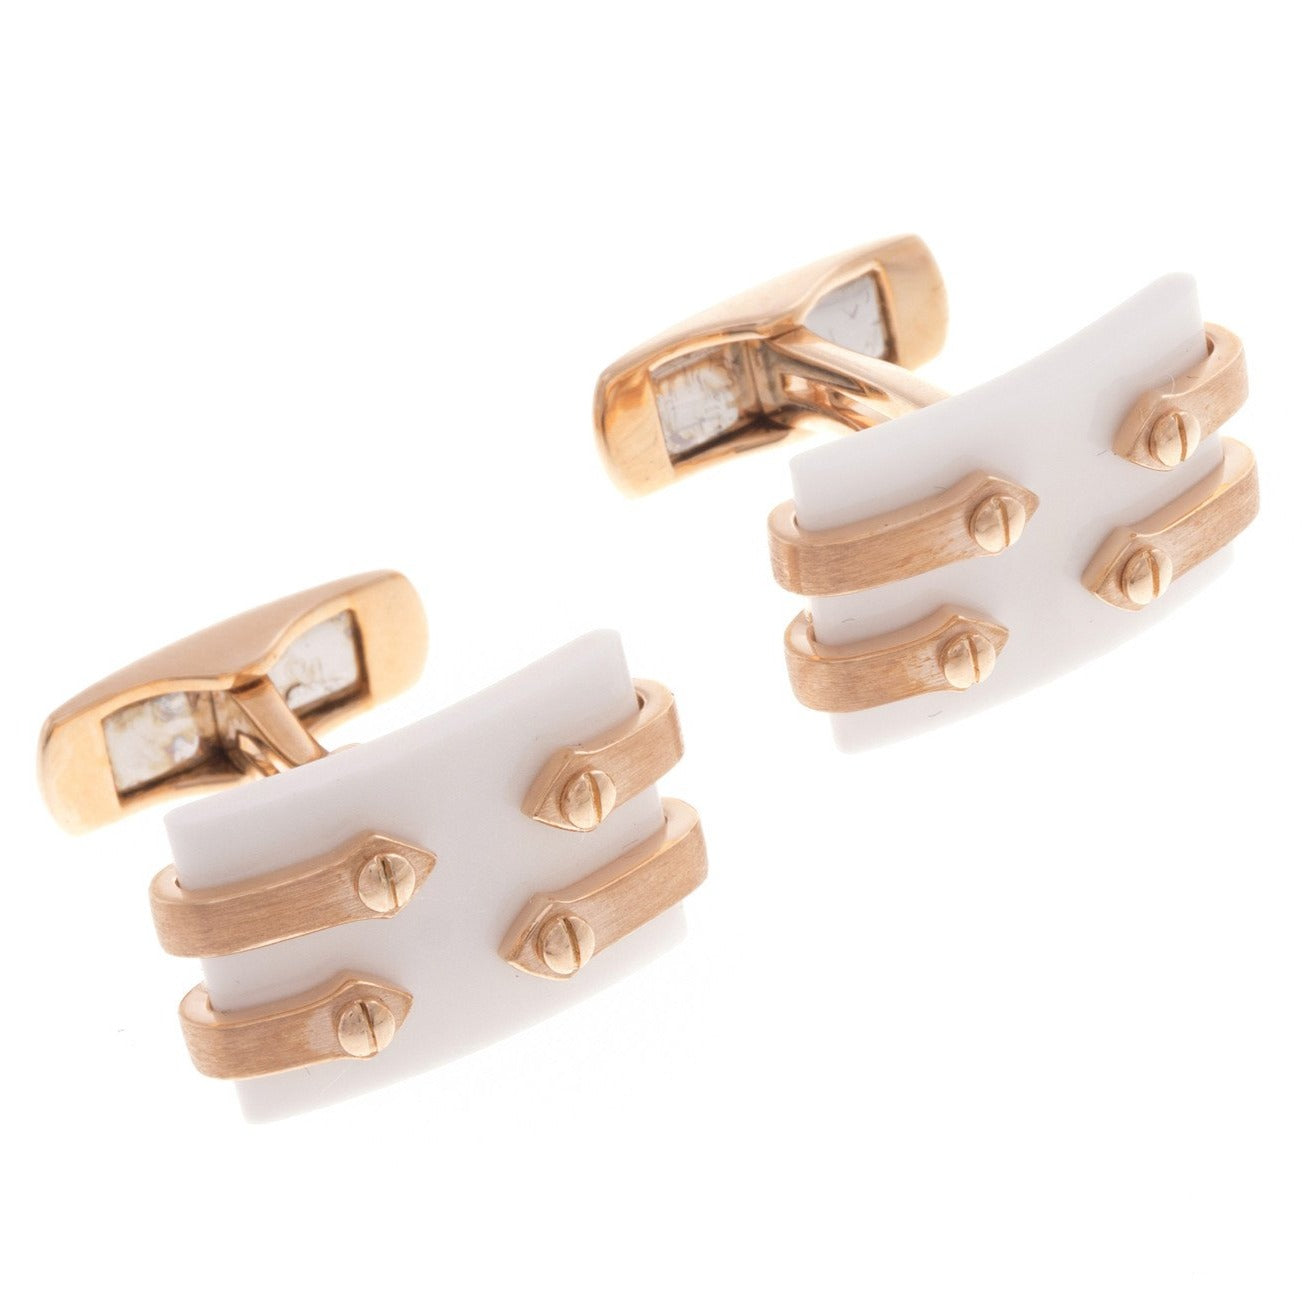 18ct Rose Gold Men's Cufflinks, Minar Jewellers - 1